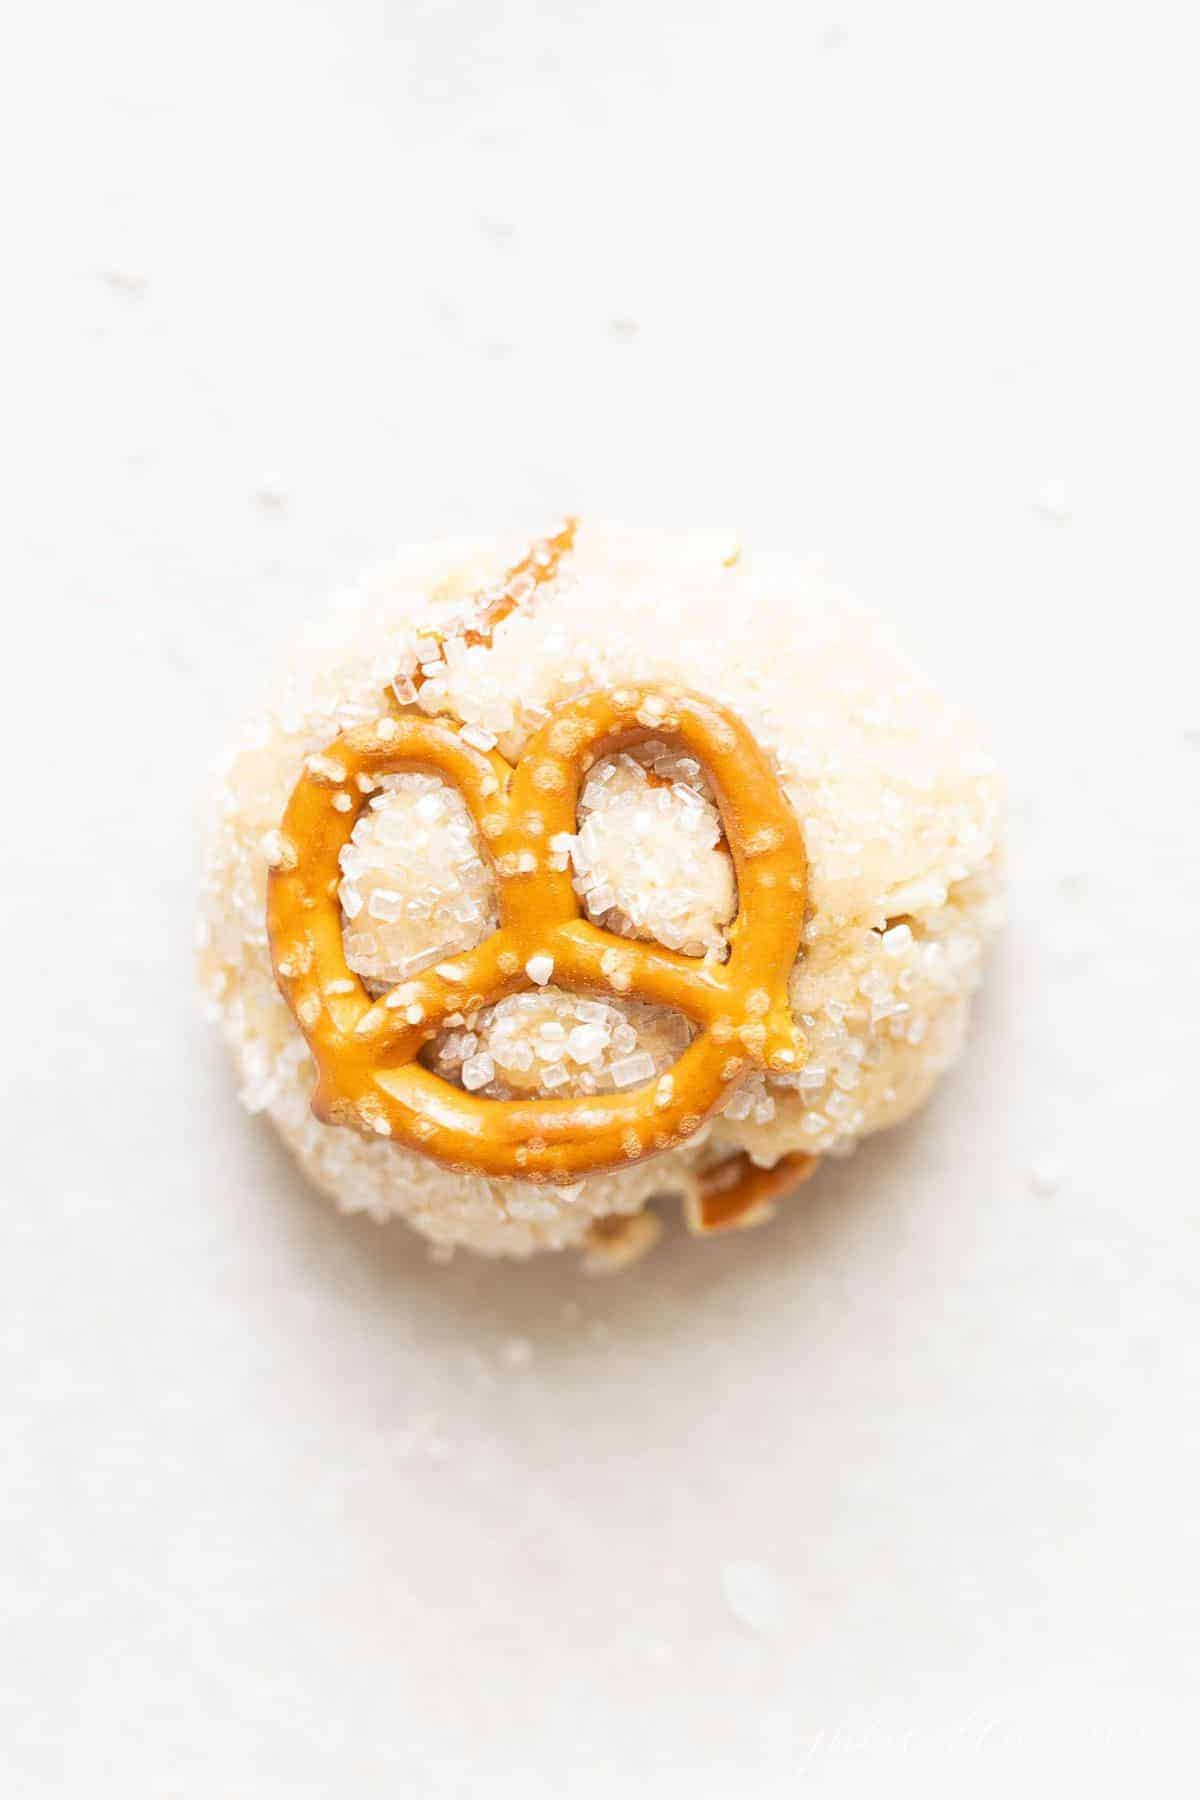 White surface with a cookie dough ball topped with pretzel.